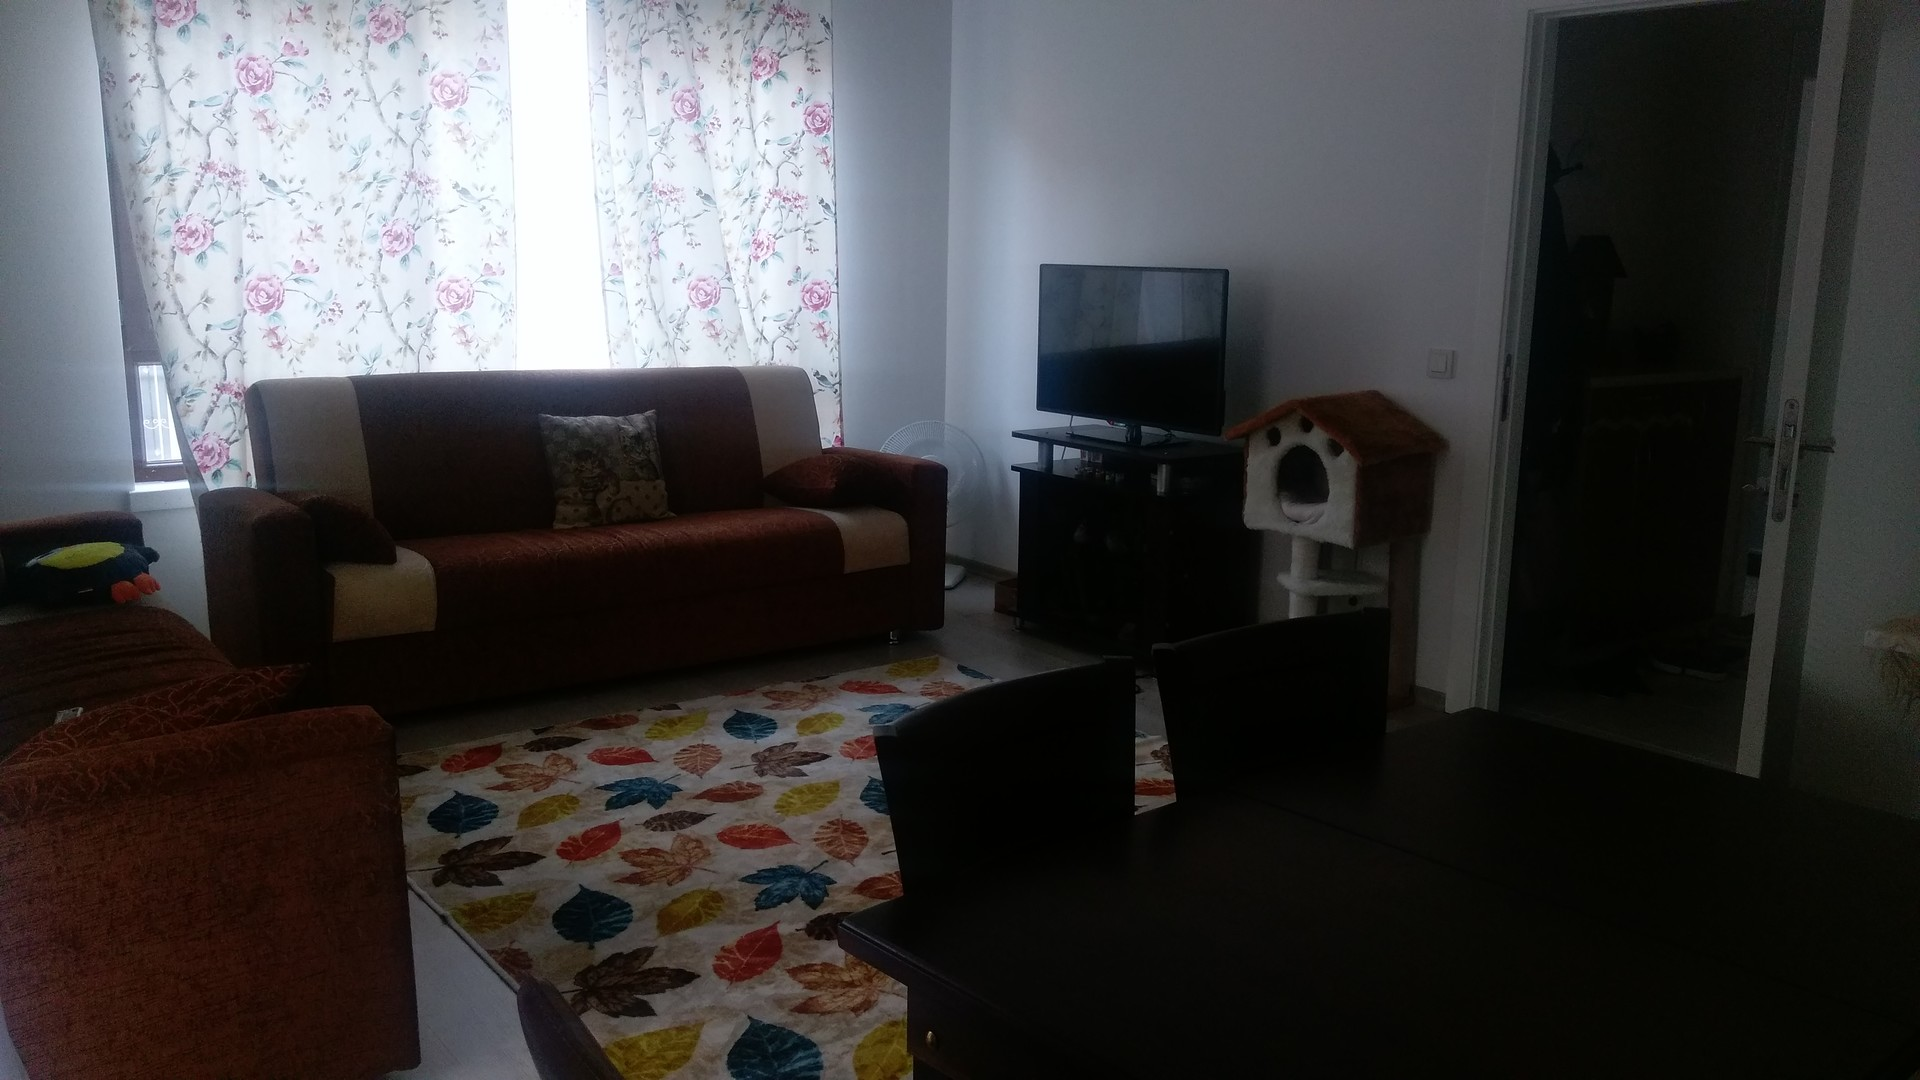 Looking For A Room To Rent In Ankara Turkey